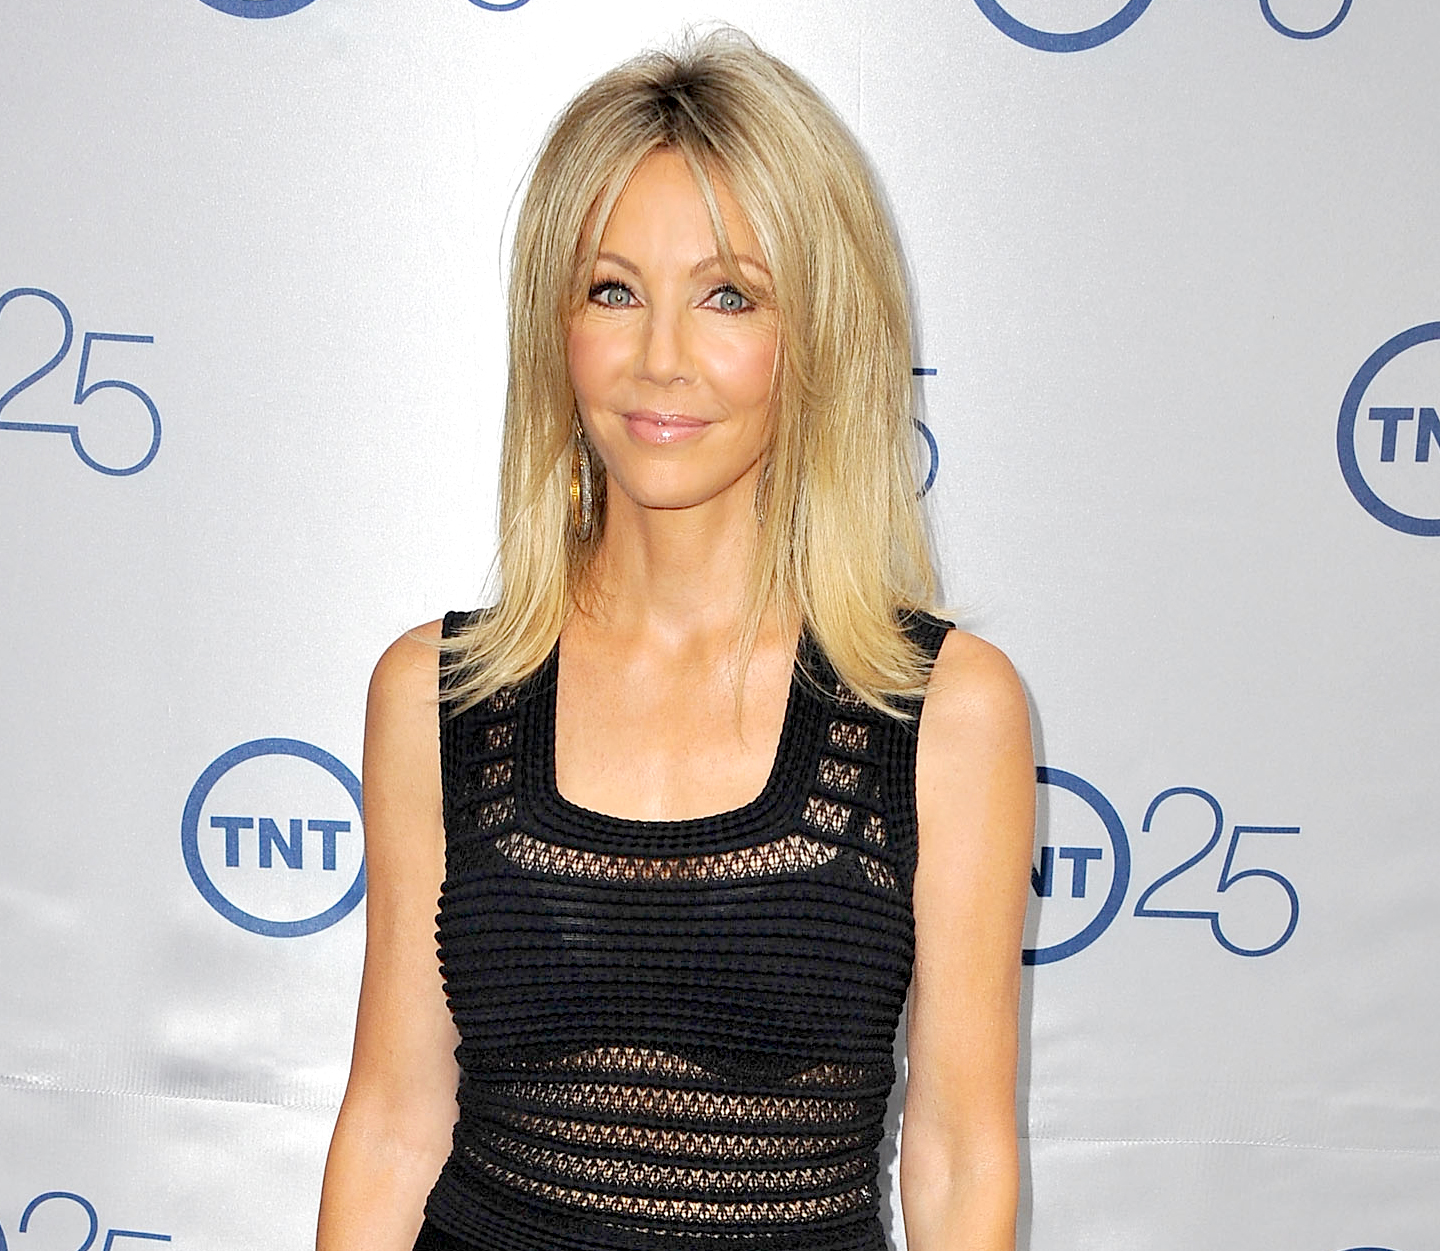 Heather Locklear nude (44 fotos), cleavage Selfie, Instagram, legs 2020